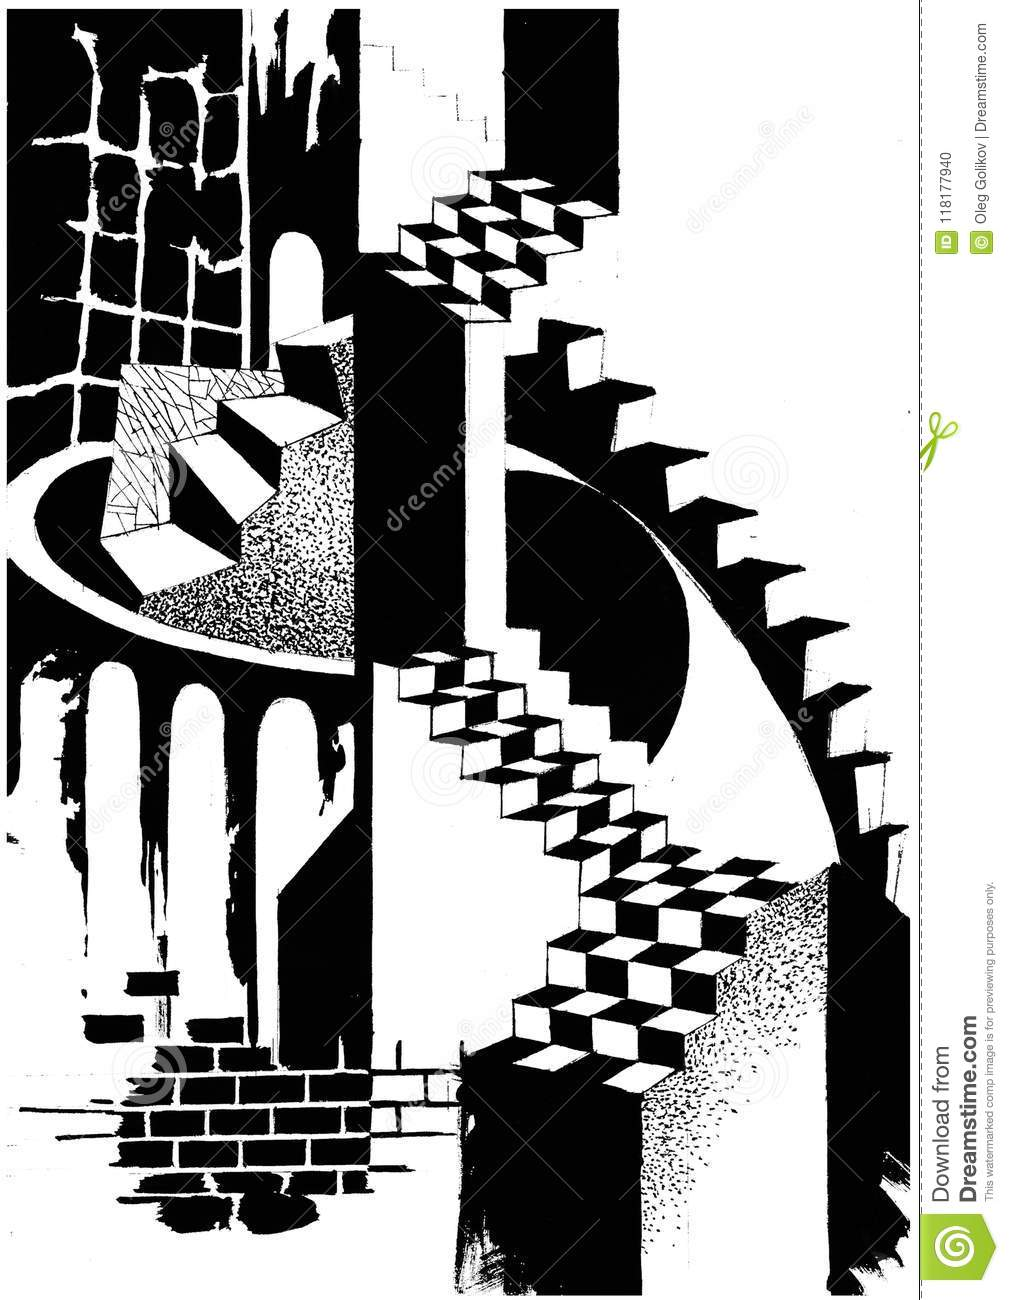 Illustration of an architectural abstract composition the drawing is executed by hand with different graphic effects